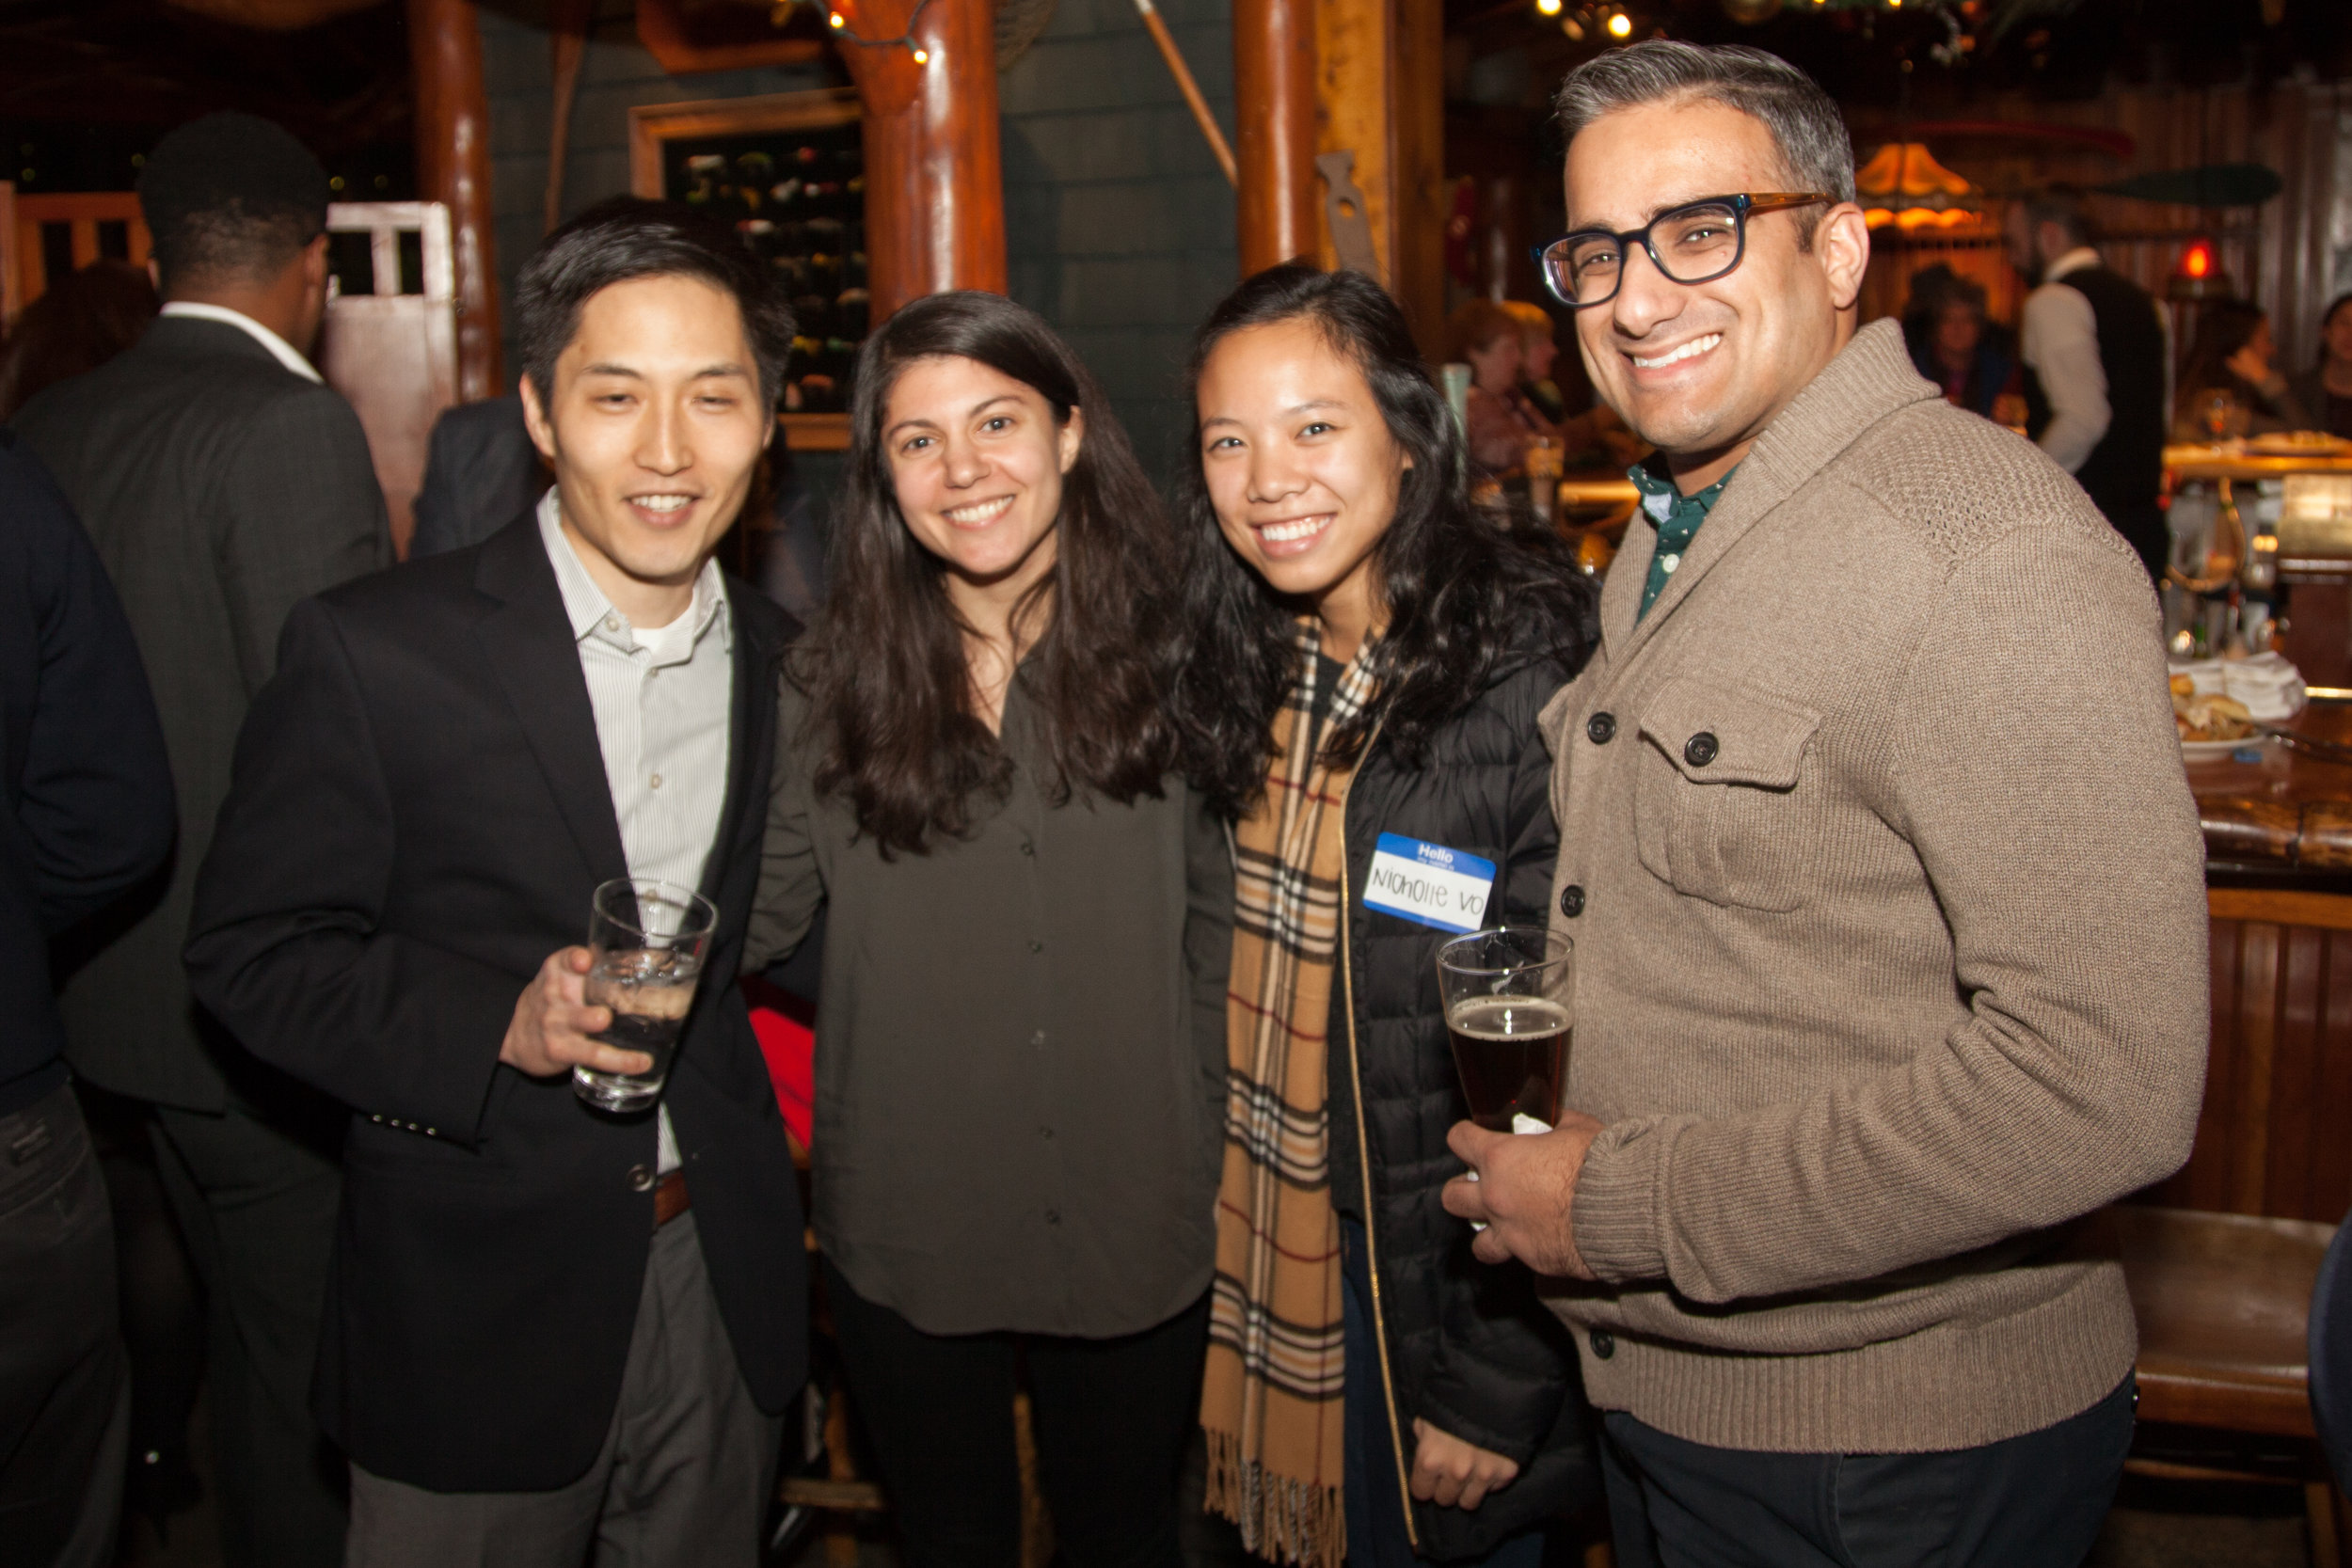 APABA MD Future Leaders: Kyle Deuchant and friend, Nicolle Vo, APALSA UMD Student Liason to APABA MD, and Vishal Hemmani; taking a break from their legal studies.